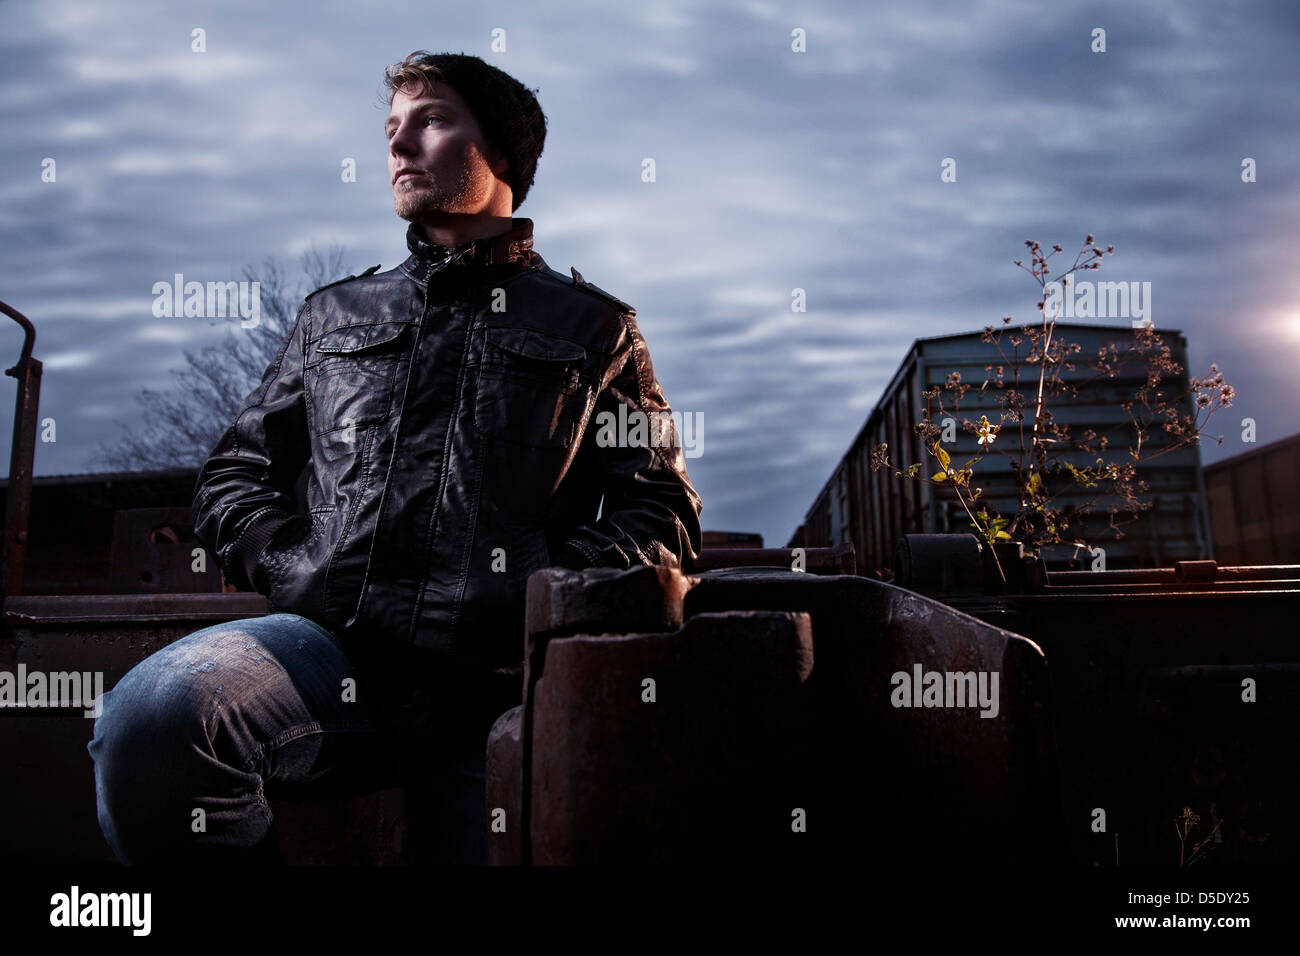 Man standing in rail road yard against stormy sky - Stock Image